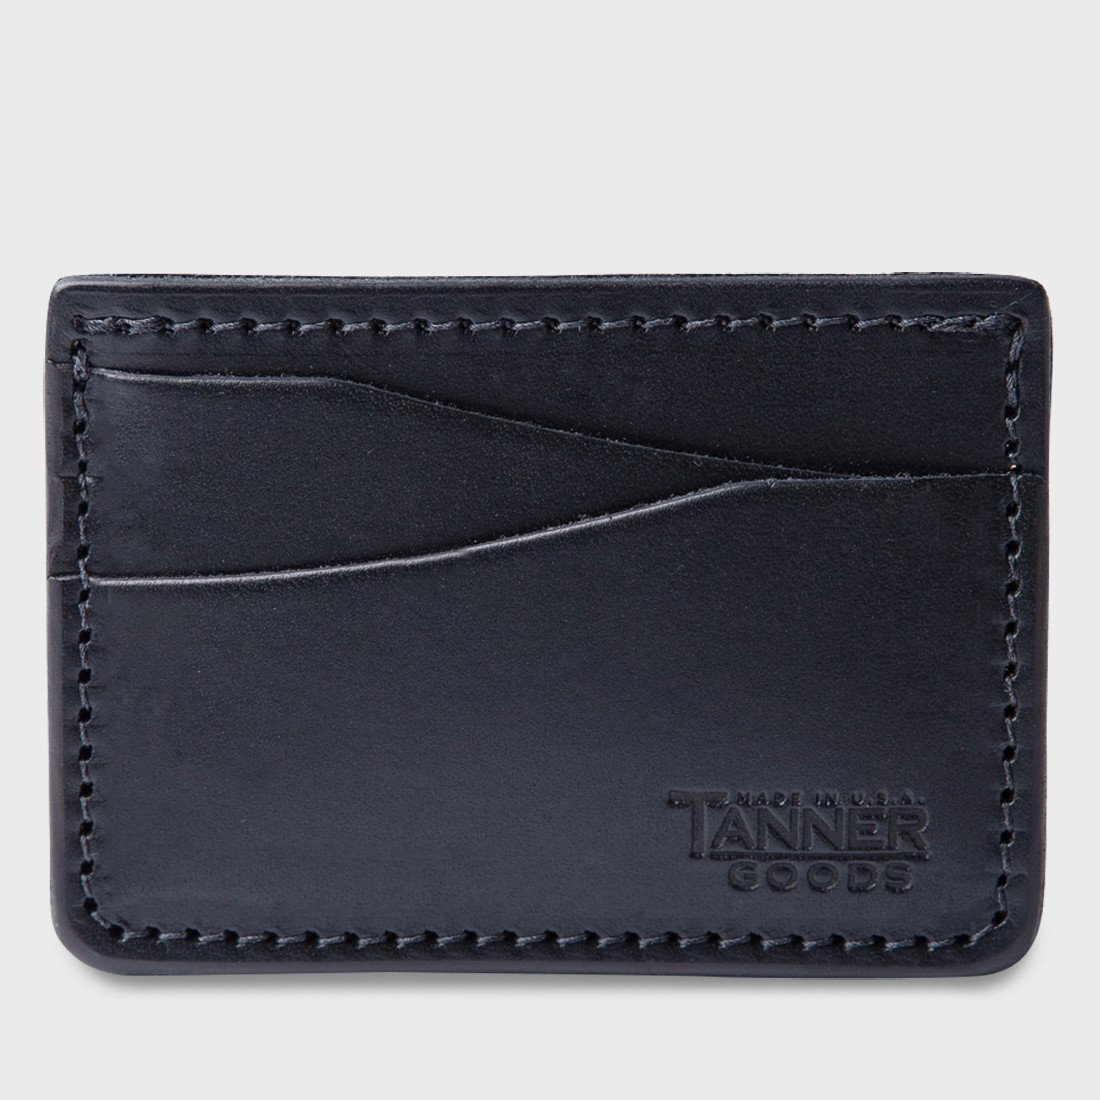 Tanner Goods Journeyman Wallet Black